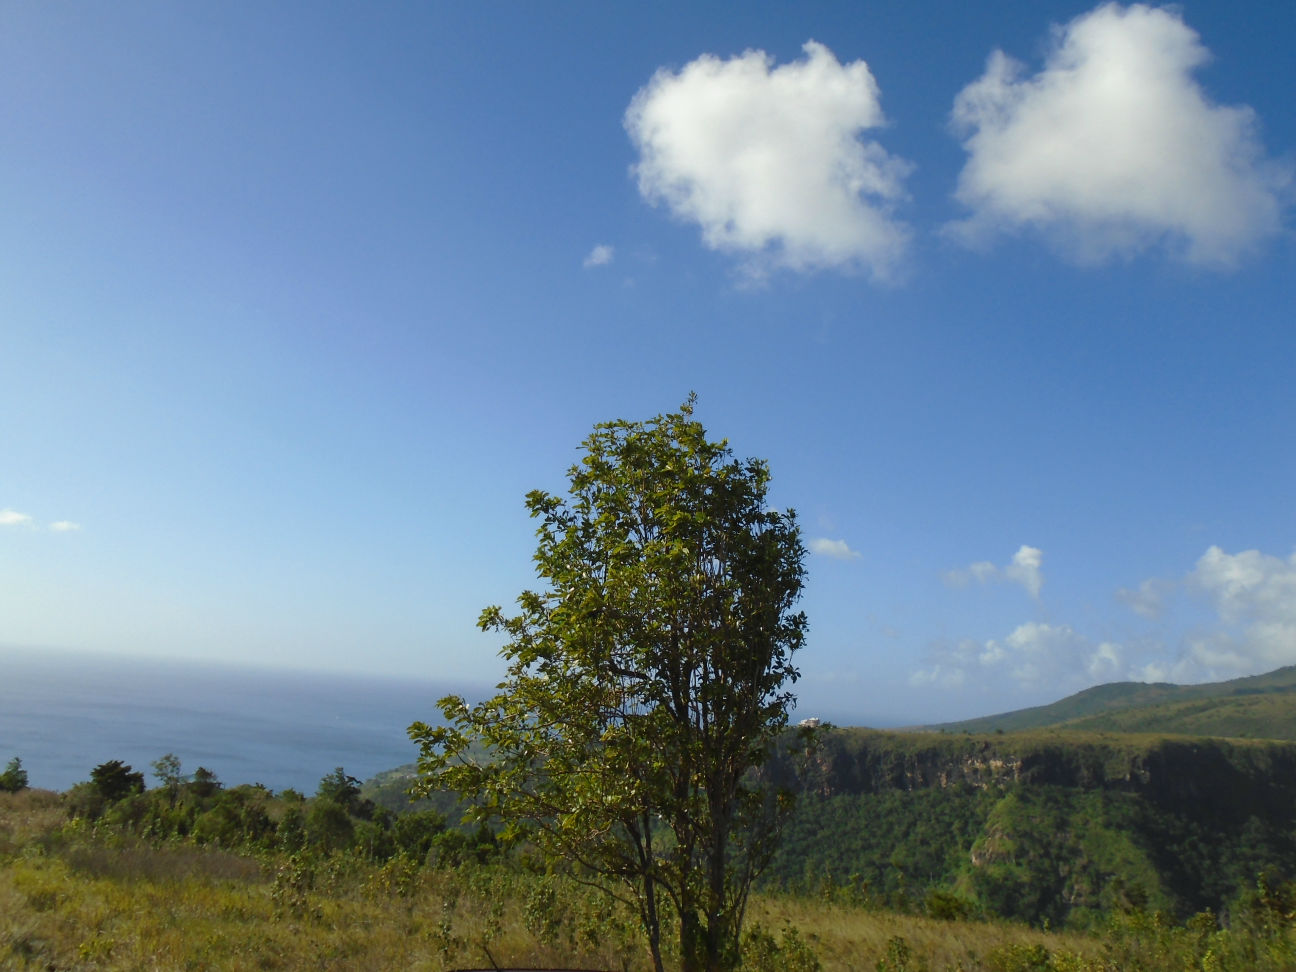 Dominica Real Estate: 1 acre land for sale at Cuba Road, Mero